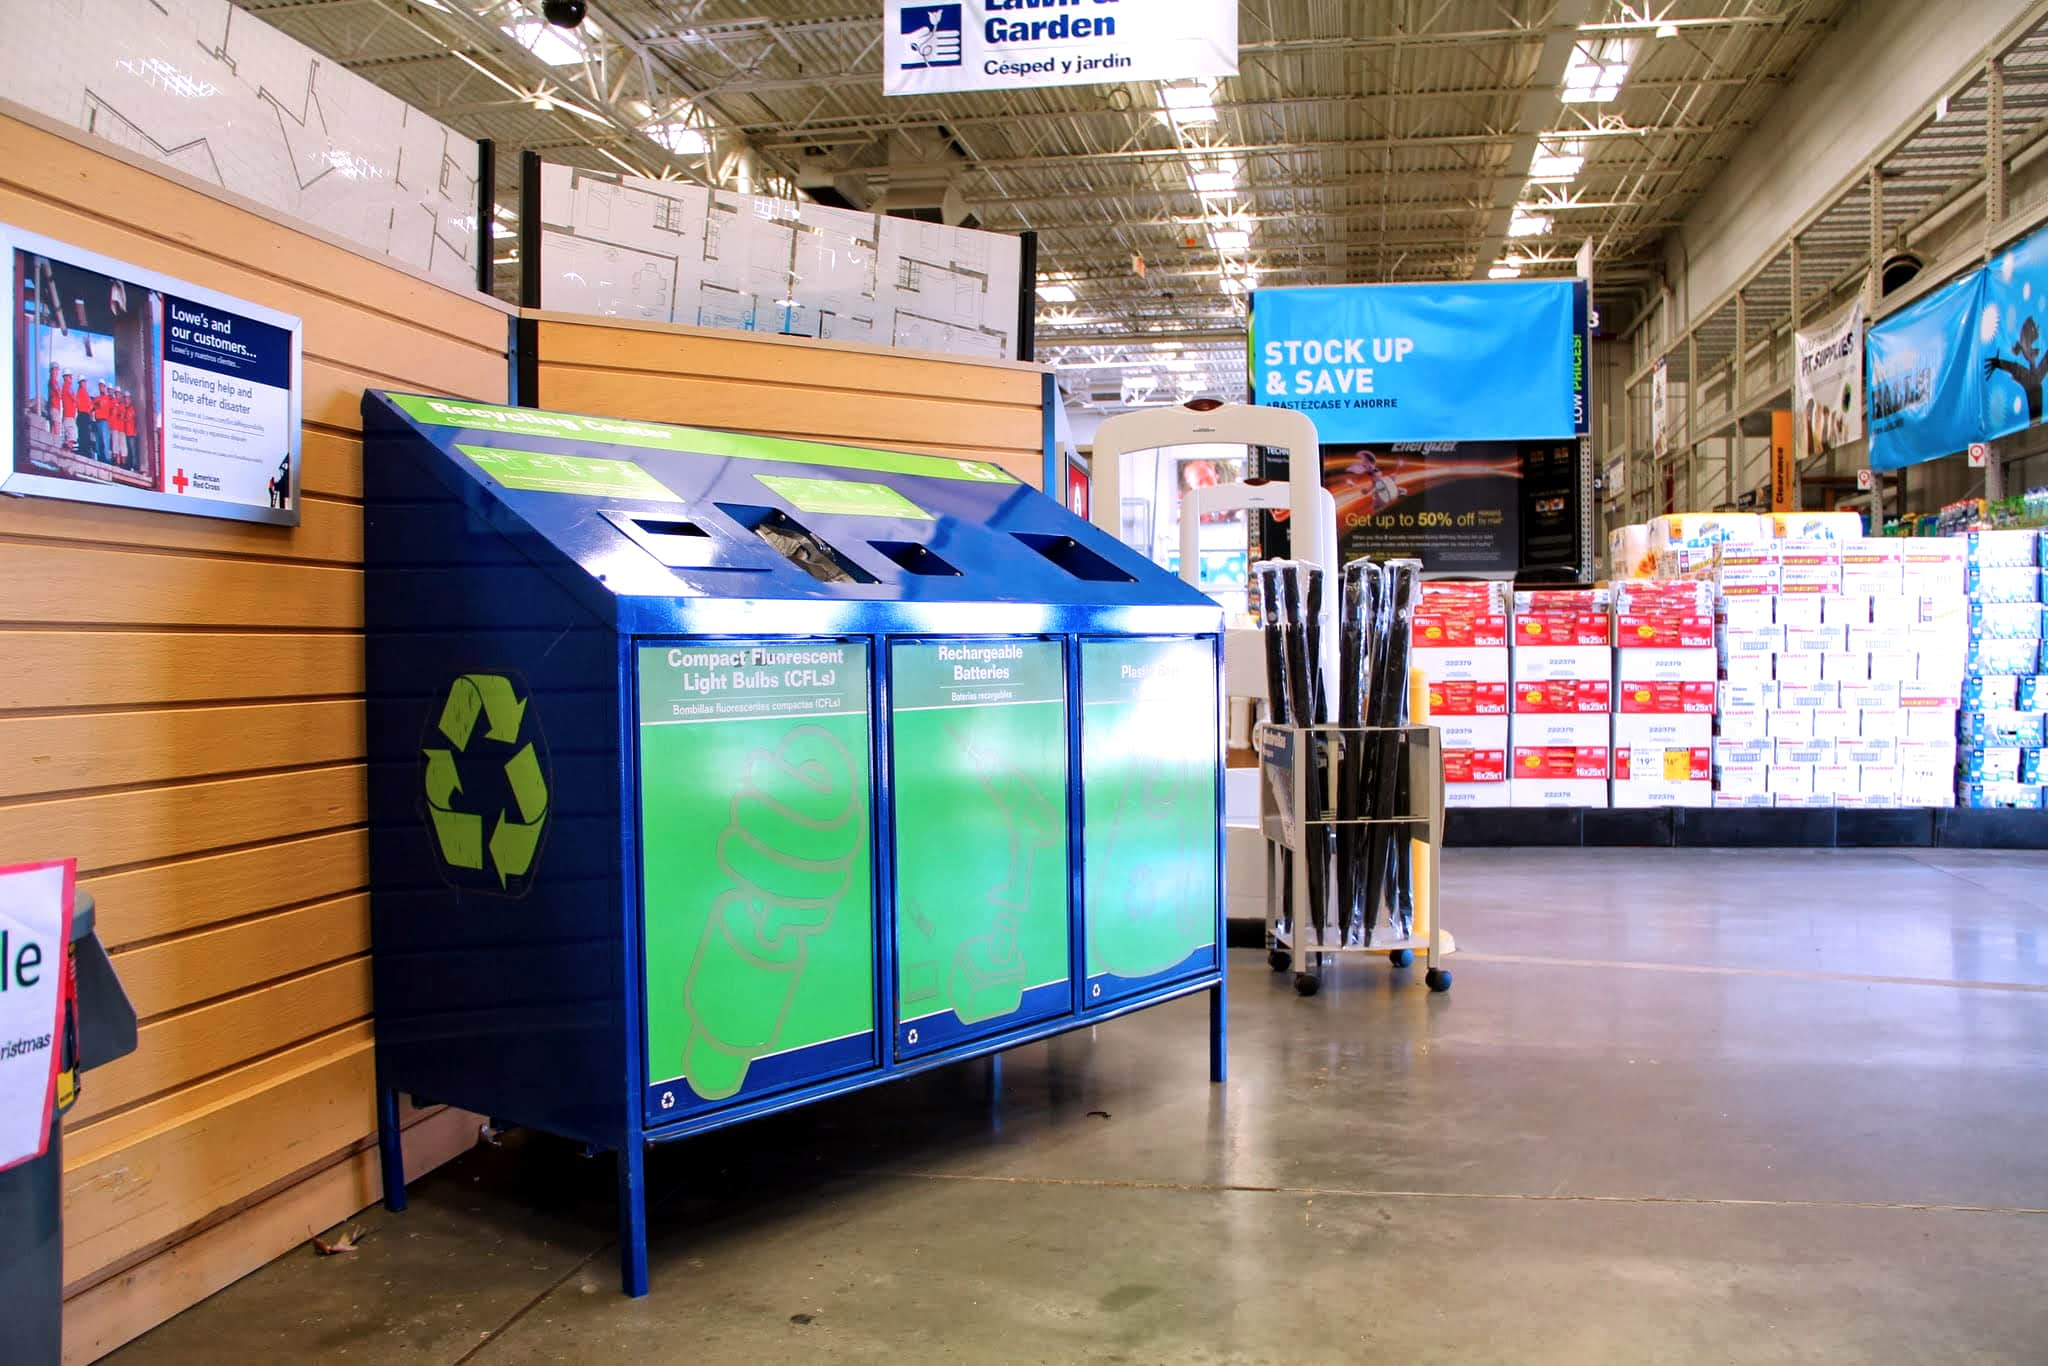 3 easy ways to help recycle rechargeable batteries   Lowe's Corporate